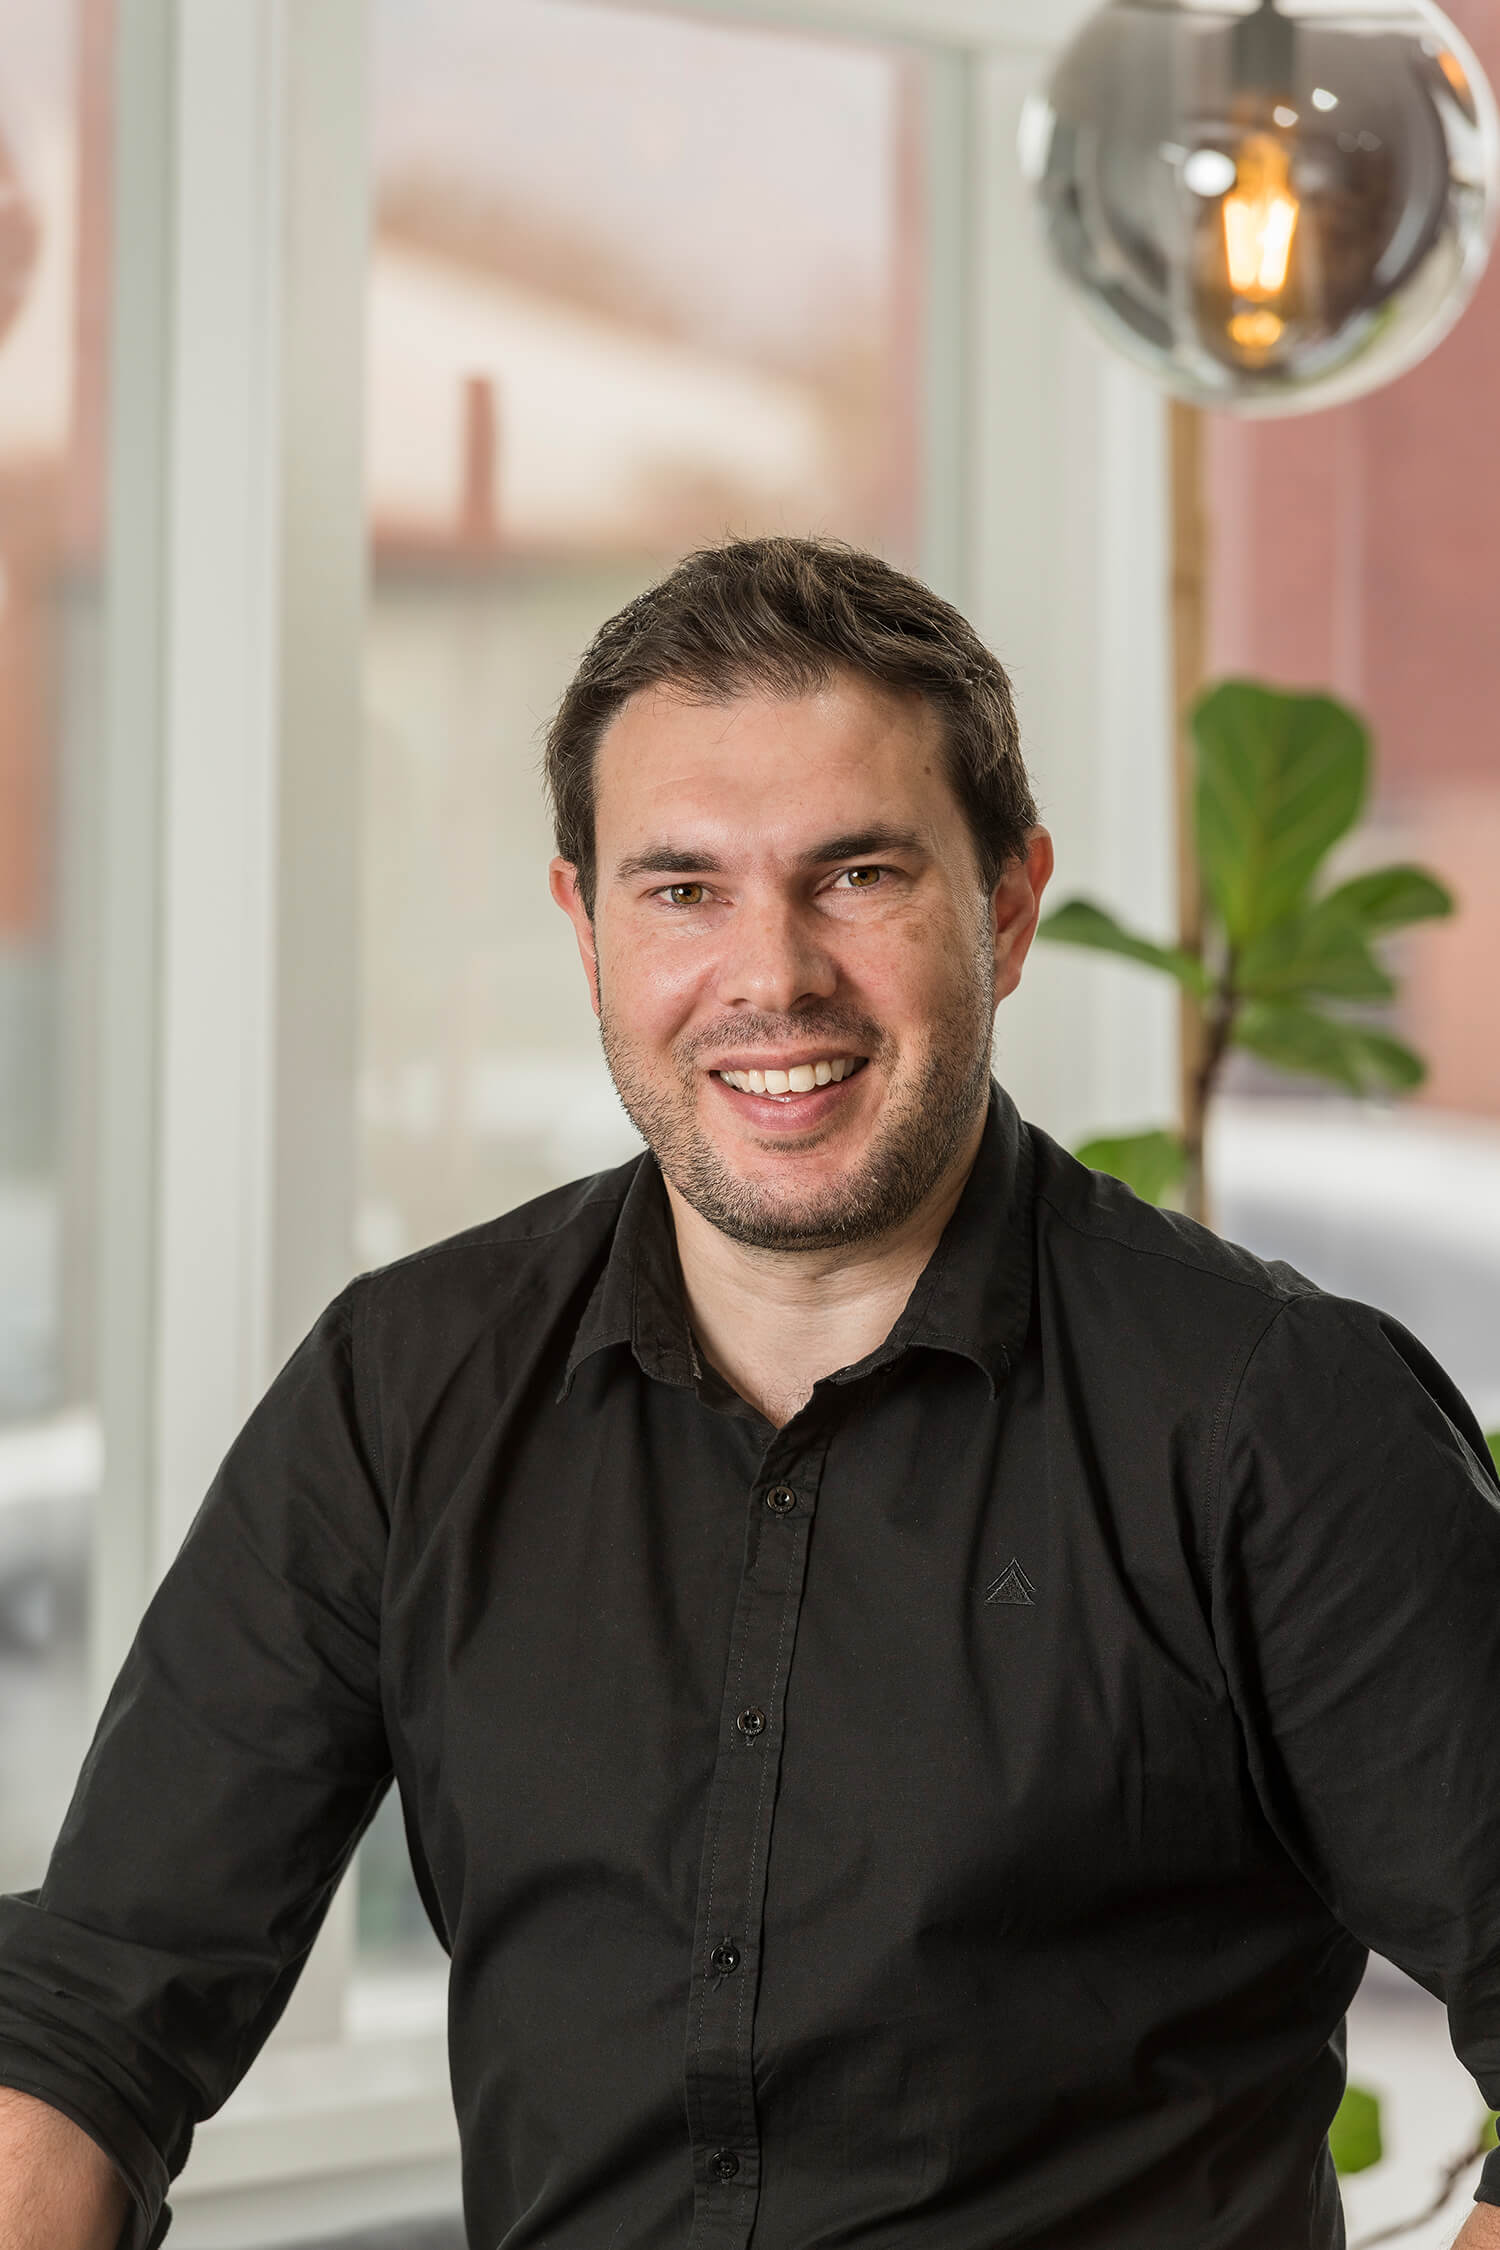 Wade Fairley - <p>Wade started with ELK in 2017 and brings his experience from a number of award-winning firms throughout NSW. With over 10 years of experience, Wade has successfully designed and delivered projects throughout the residential, aged care, seniors living, recreational and commercial sectors.<br /> Exploring all opportunities for amazing spaces and with a keen interest in the historical context of a site, Wade believes that each project should look to its past and heavily draws inspiration from a site's history, context and character, to inform the design.<br /> Wade also enjoys leading and working within a collaborative team environment along with creating excellent</p>